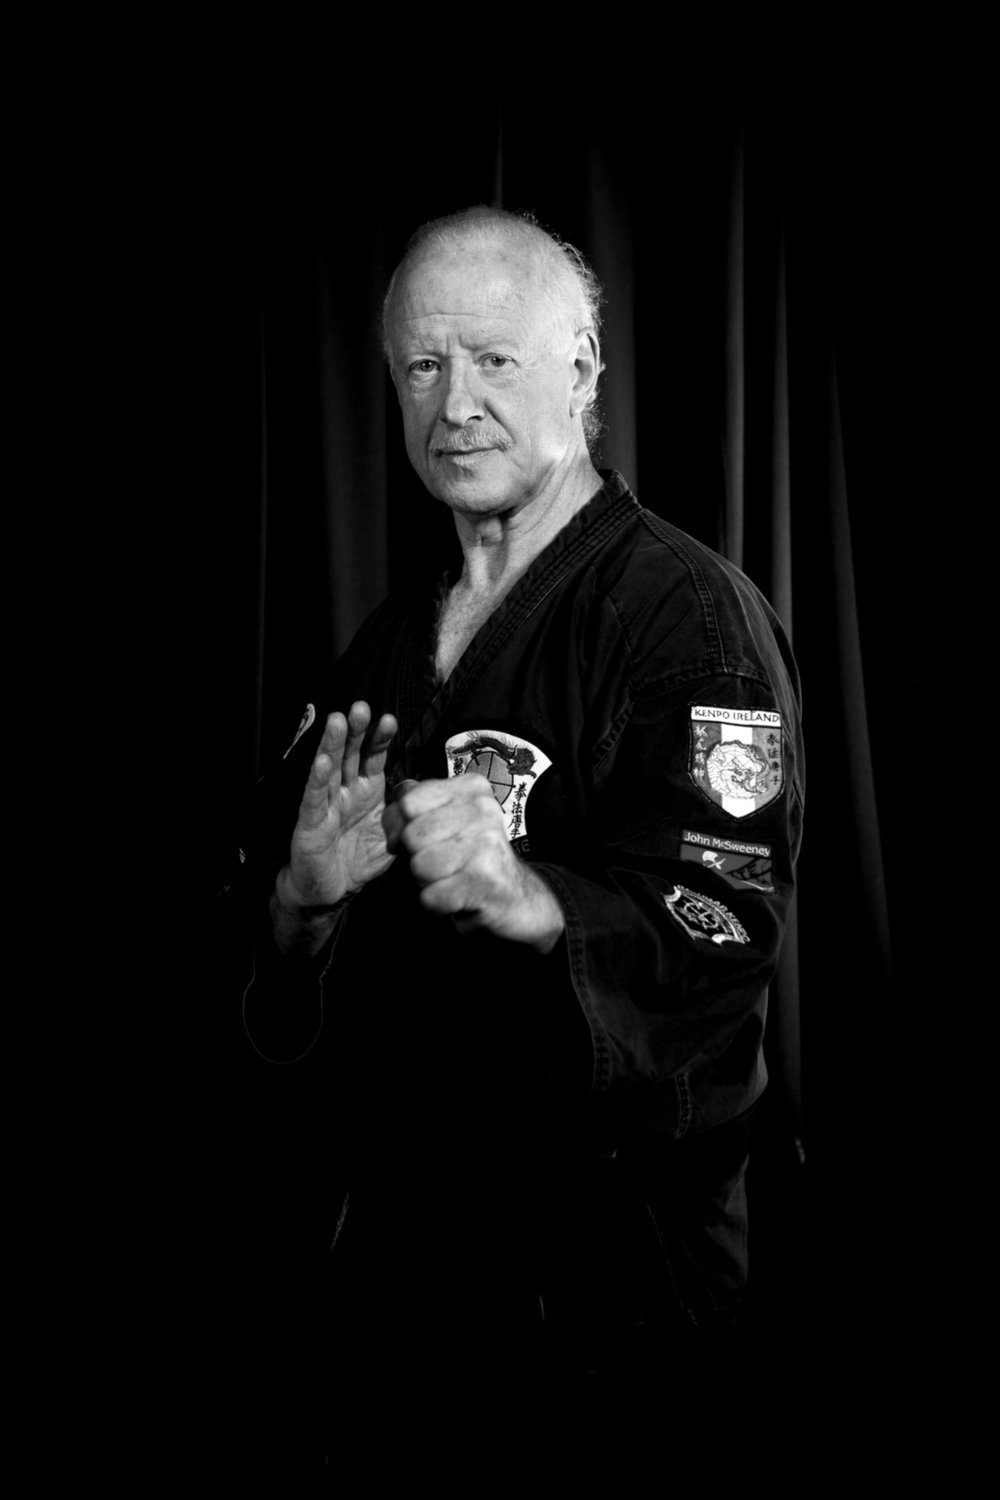 GM Peter Coyle -10th Degree Black Belt.   European Director, International Kenpo Yudanshakai.  President of the Irish Karate Association.  President of ONAKAI (National Governing Body for Karate in Ireland).